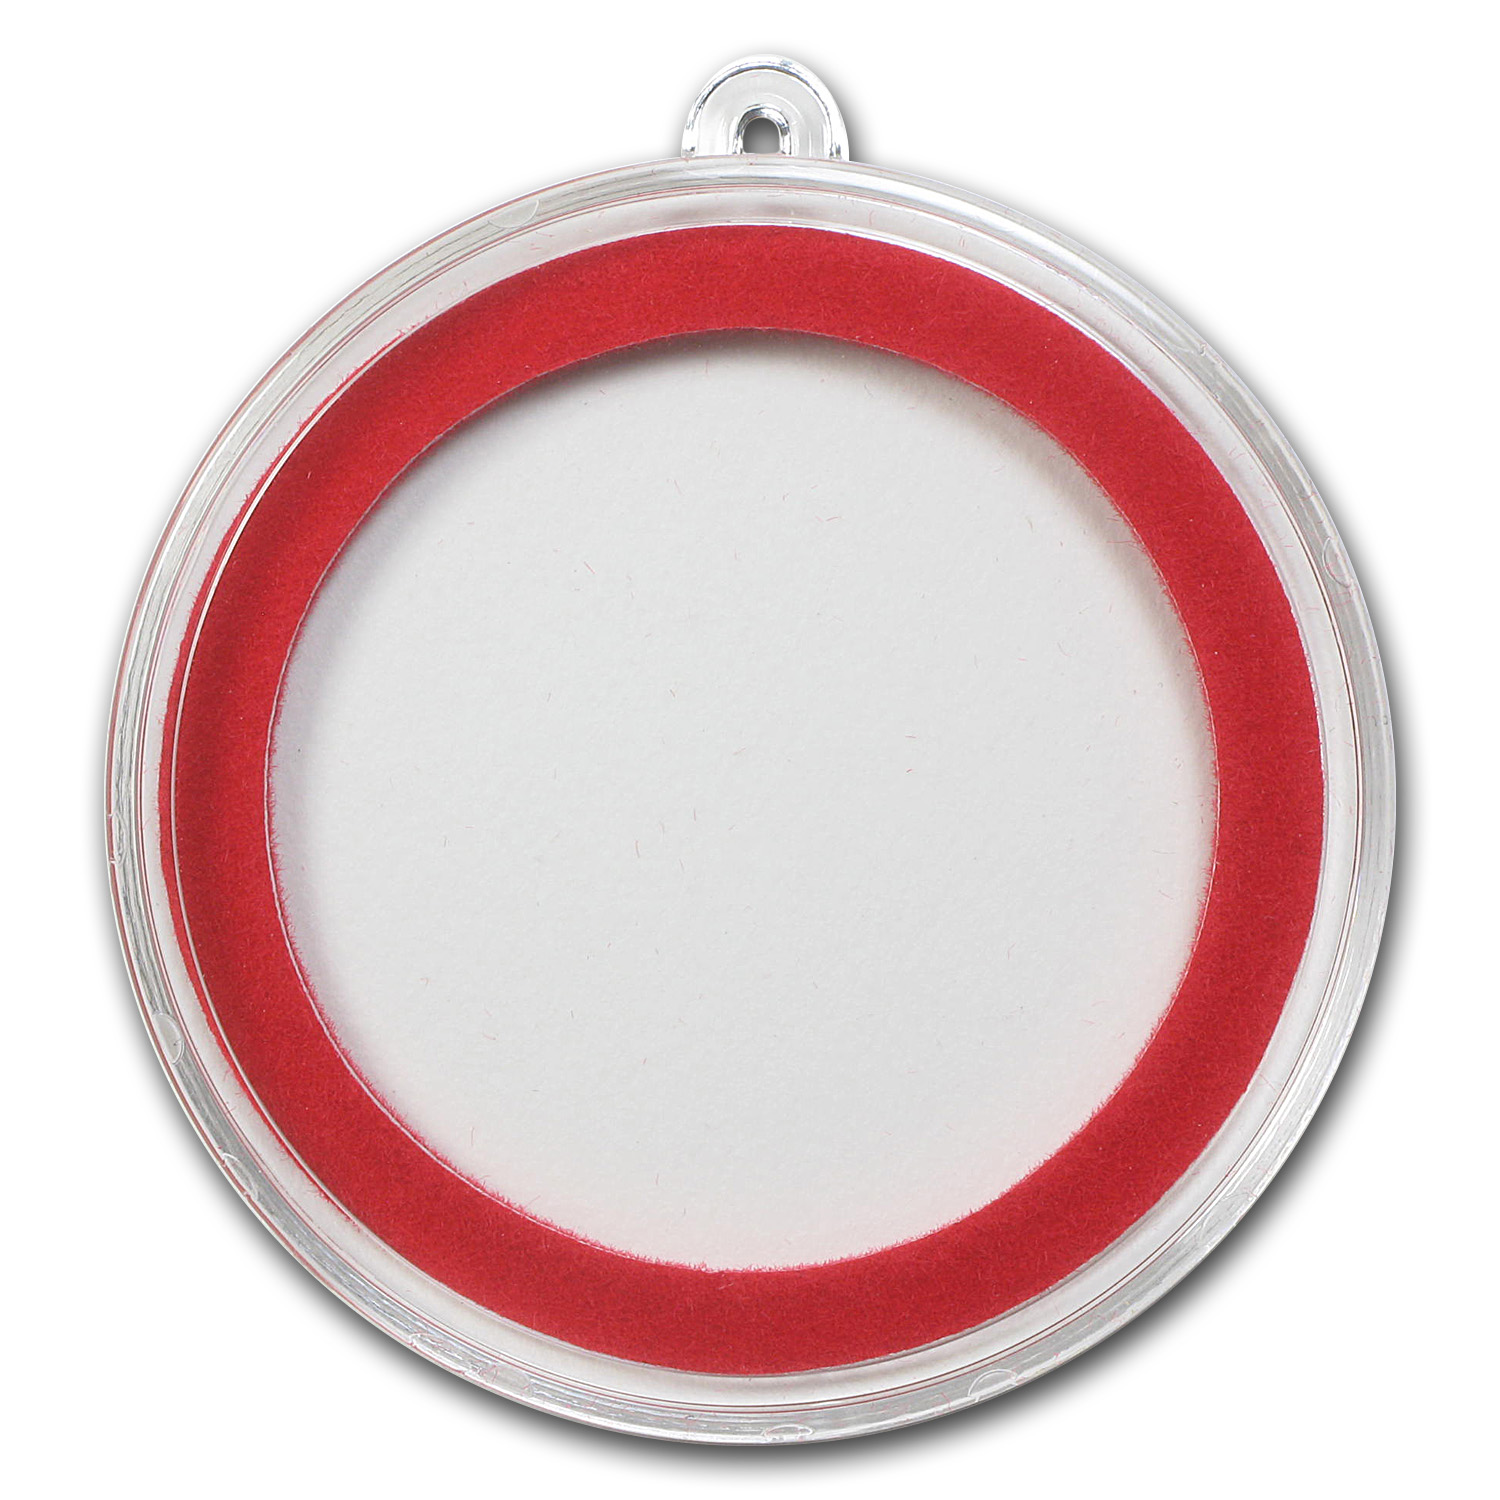 Ornament Capsule for Silver Rounds - 38mm (Red Ring)